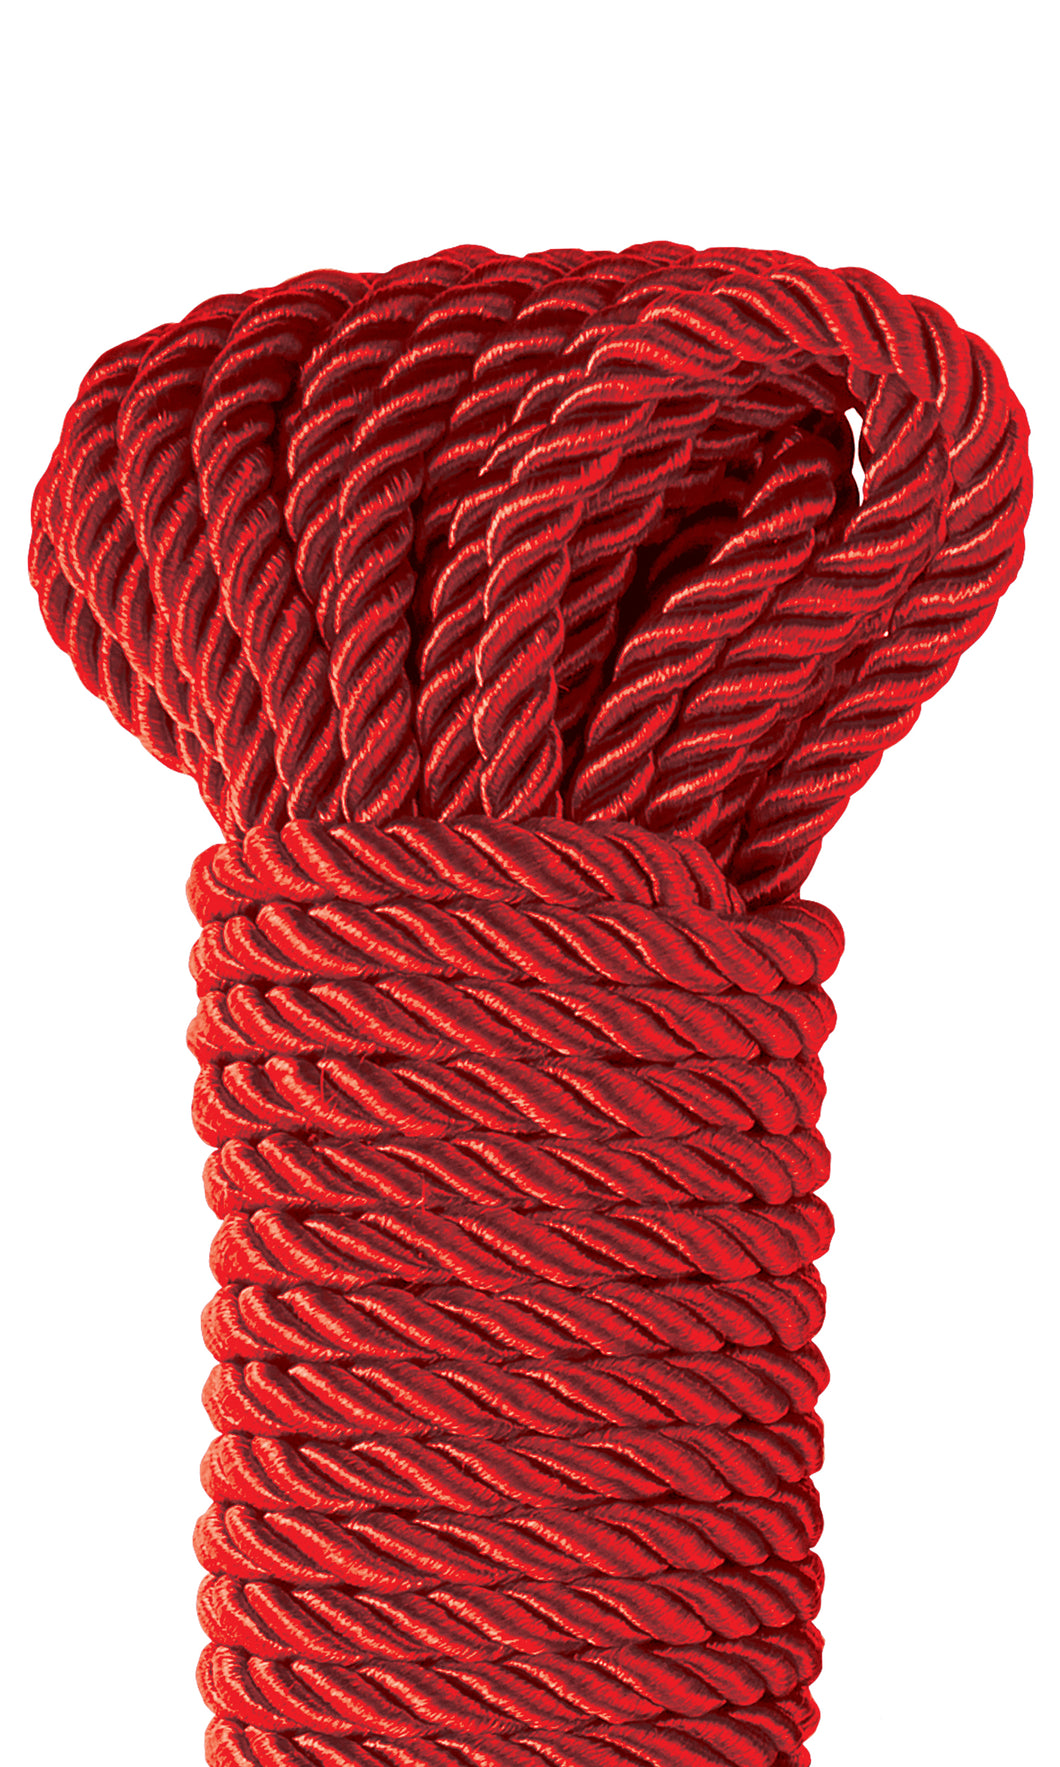 Fetish Fantasy Series Deluxe Silky Rope - Red - My sheree and More